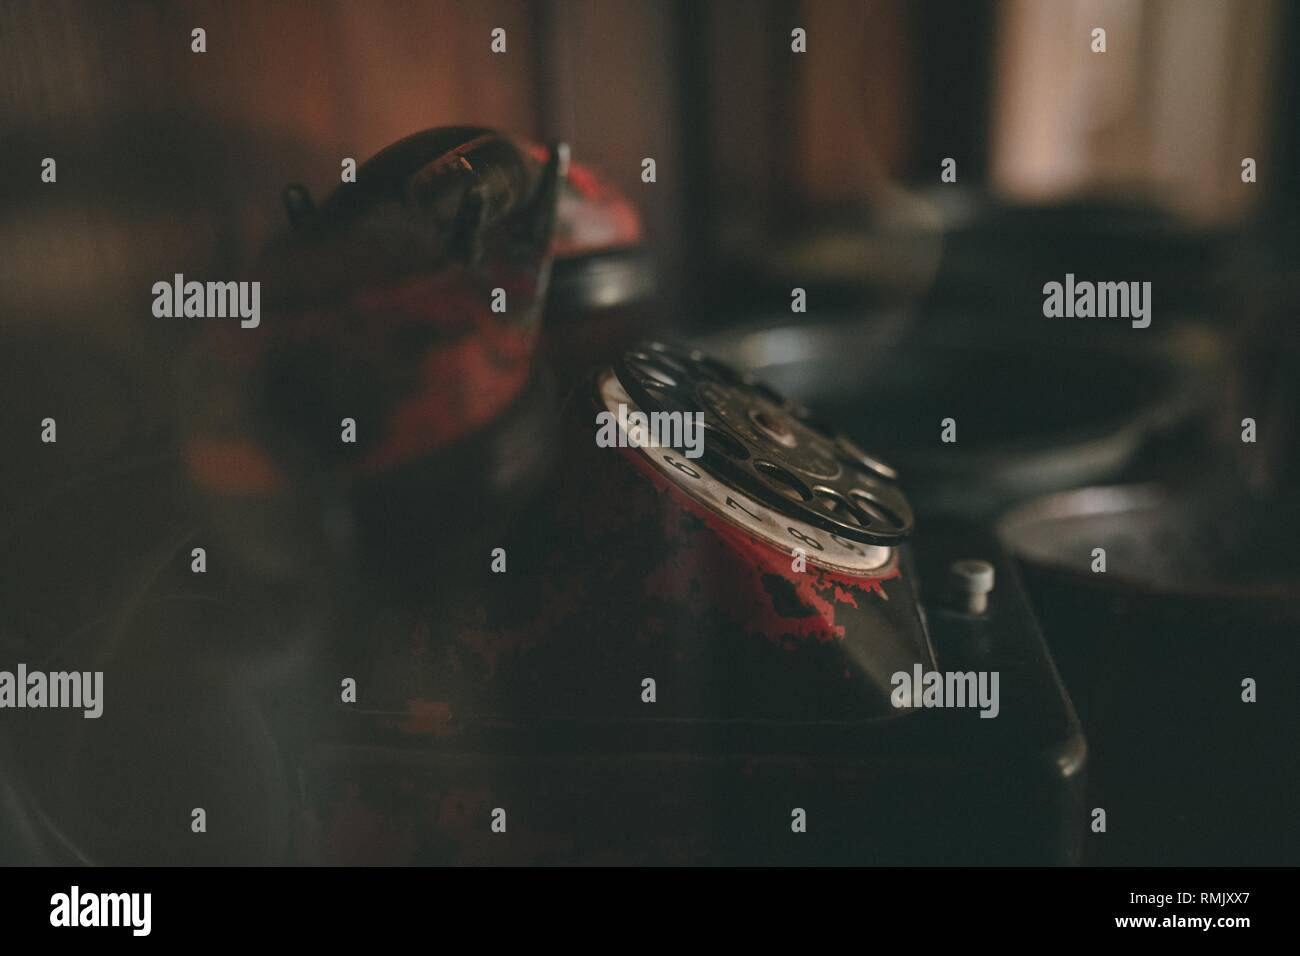 Photo of a vintage black and red worn out phone - Stock Image